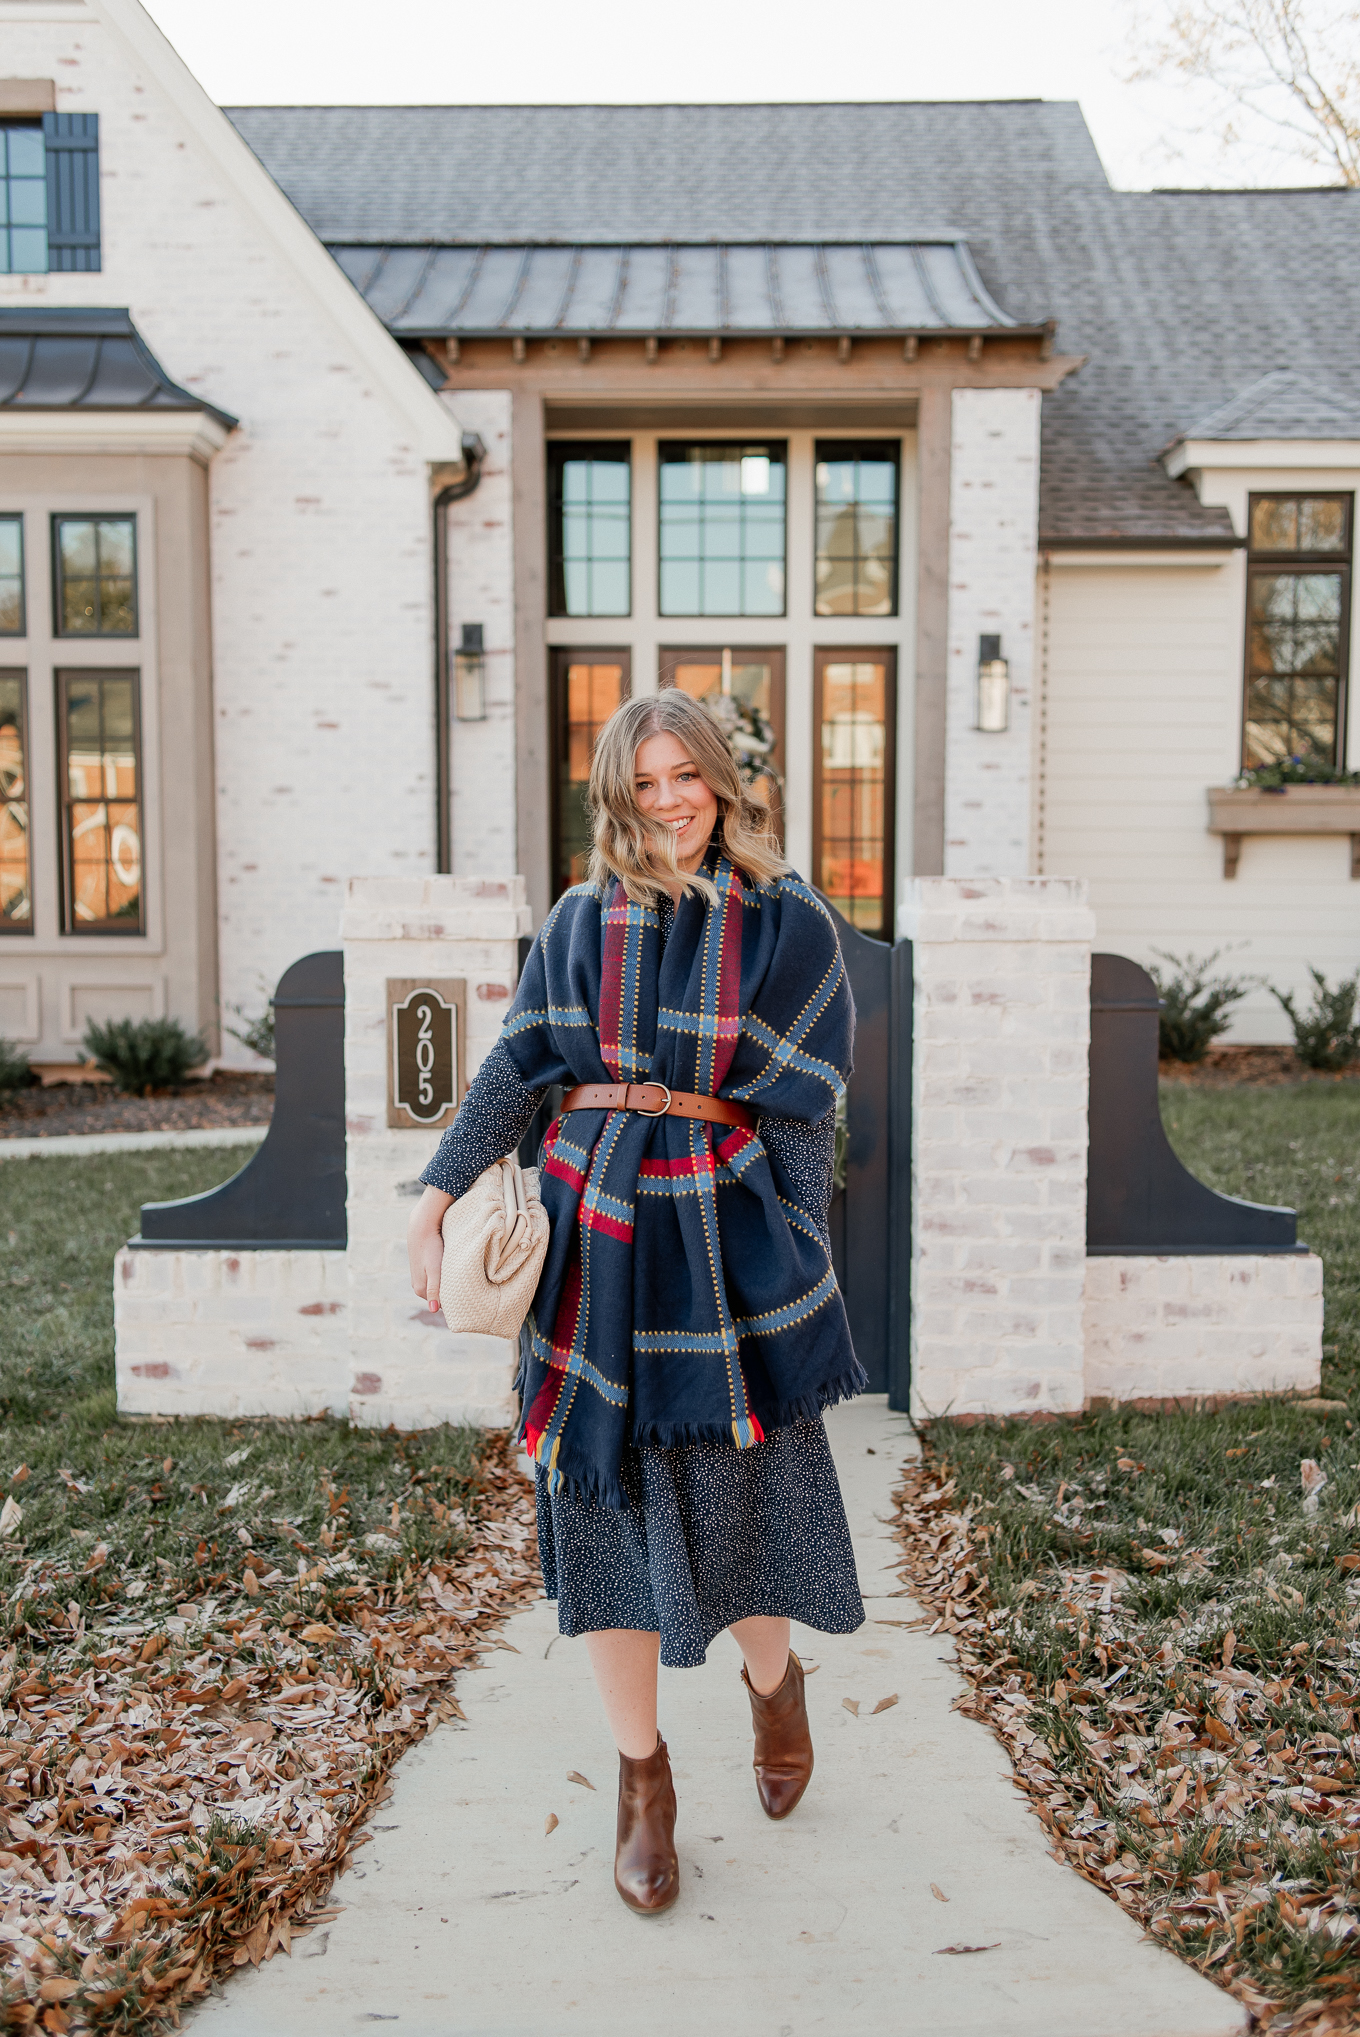 Winter Dresses | Navy Shirtdress, Midi Dress, Navy Blanket Scarf, BOTTEGA VENETA dupe #dupes #winterdresses #winterstyle